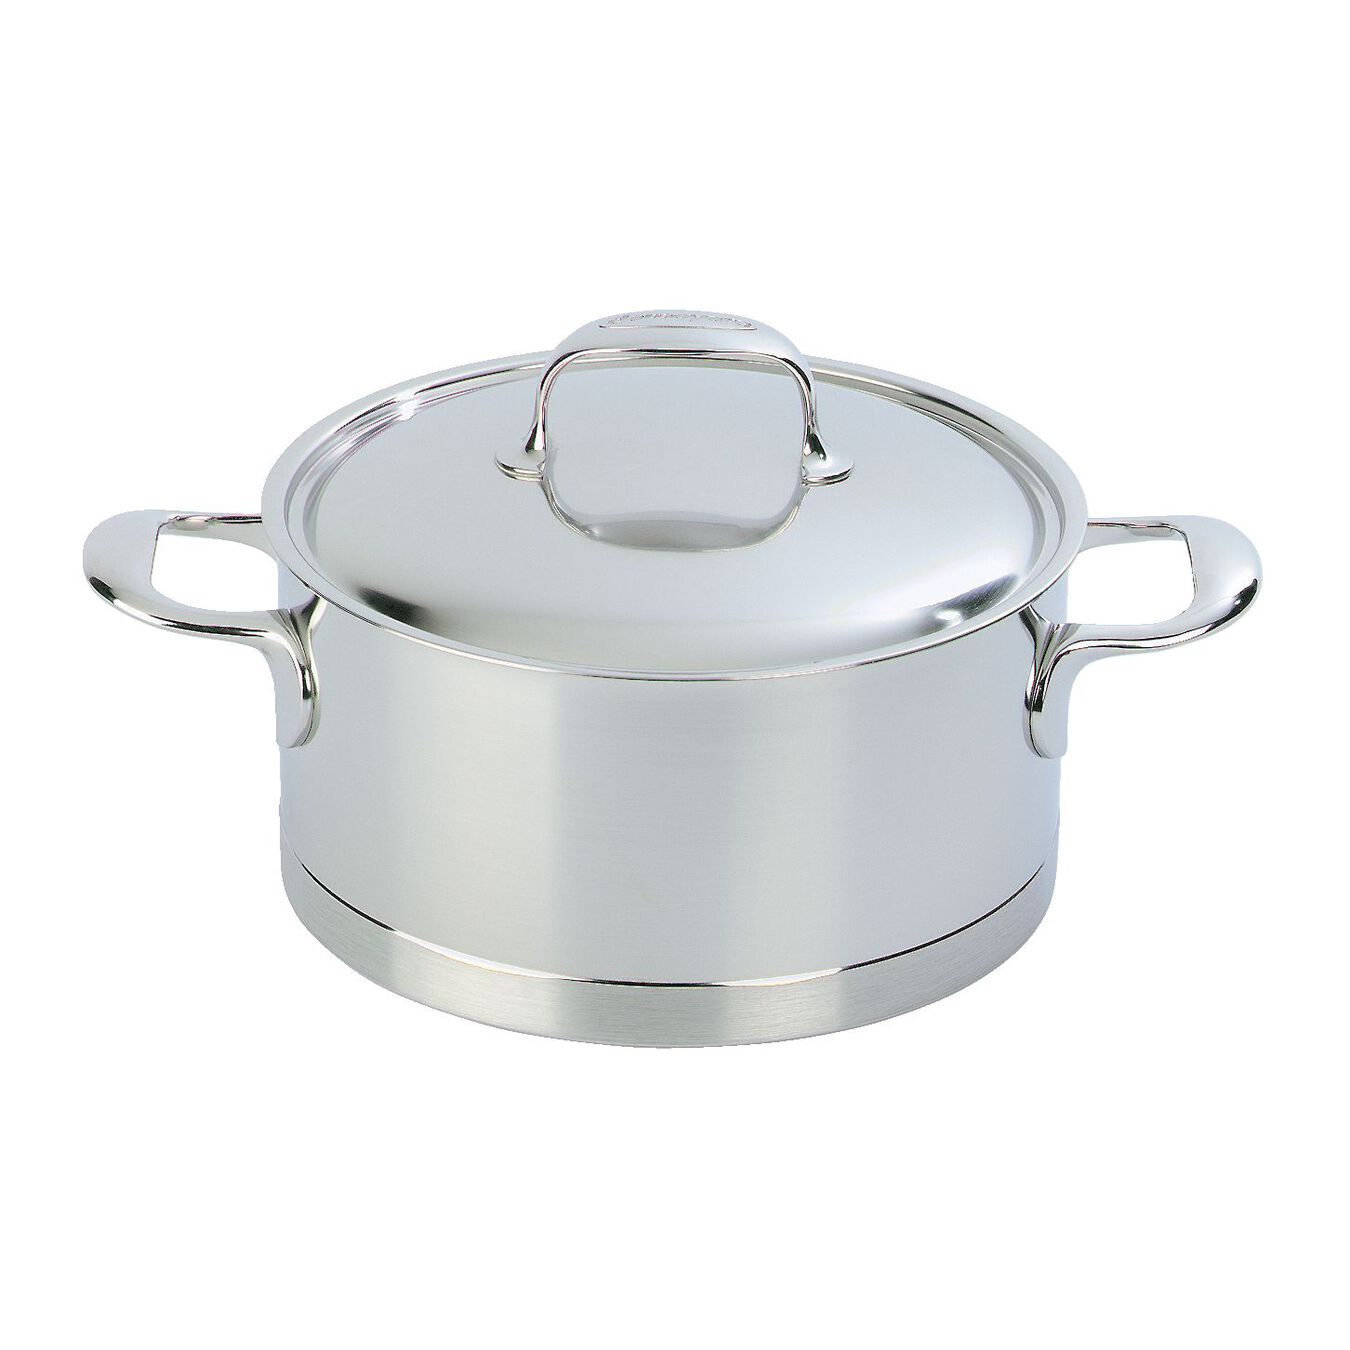 4 l 18/10 Stainless Steel Stew pot with lid,,large 2